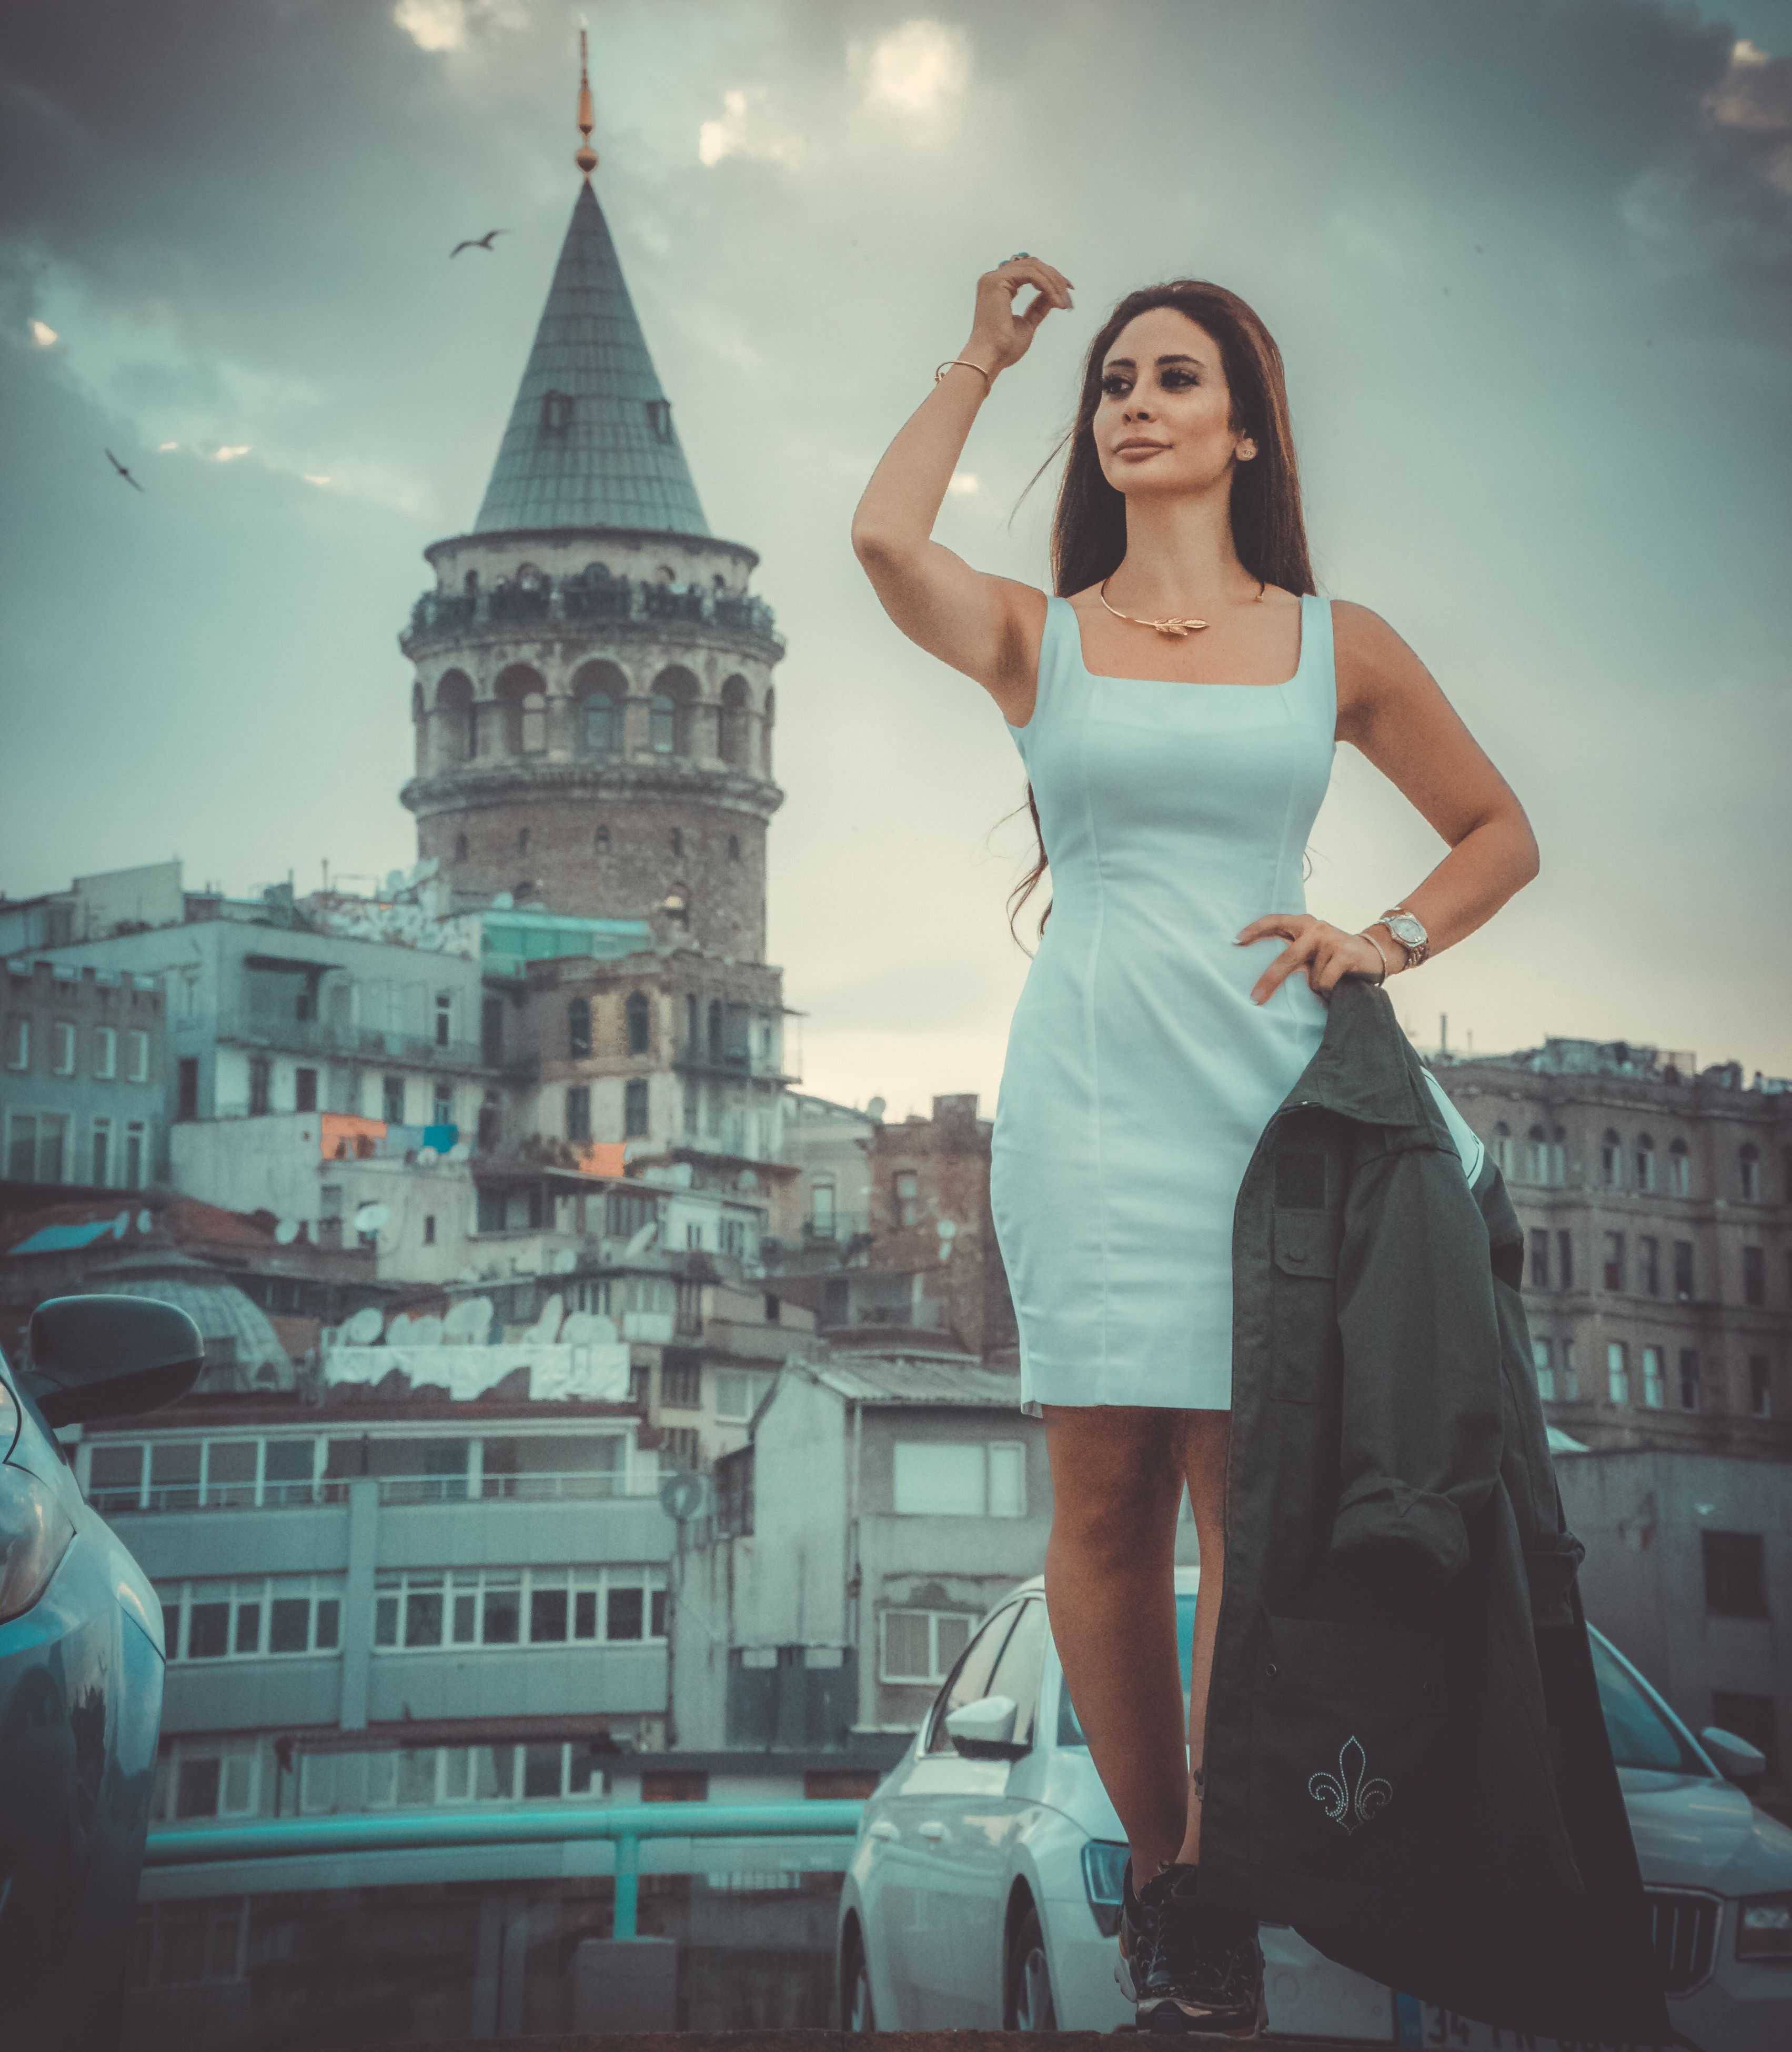 architecture, real people, building exterior, built structure, leisure activity, one person, lifestyles, outdoors, young adult, sky, young women, casual clothing, front view, beautiful woman, standing, day, travel destinations, city, full length